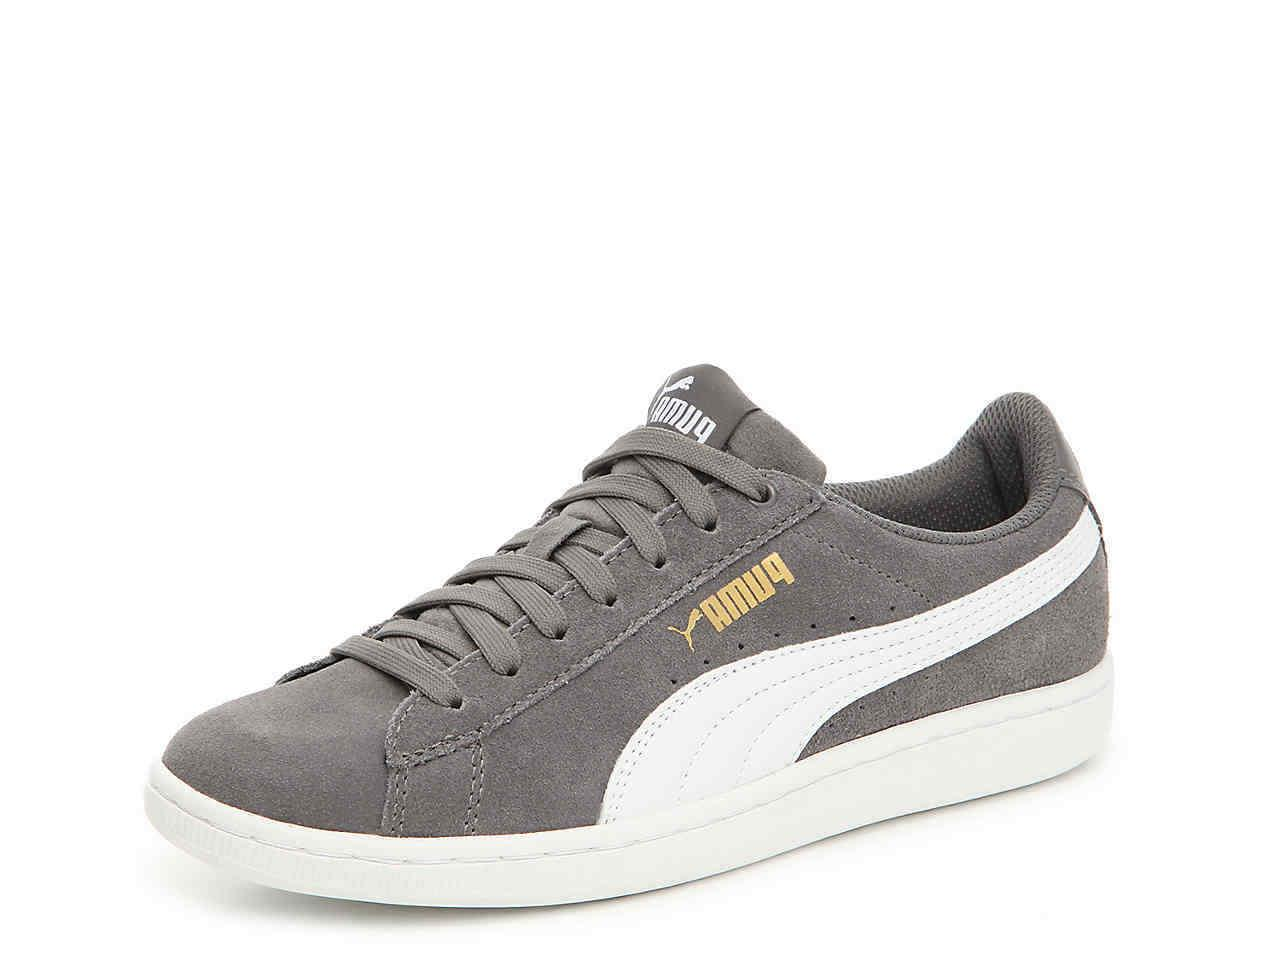 new ladies vikky suede shoes gray charcoal